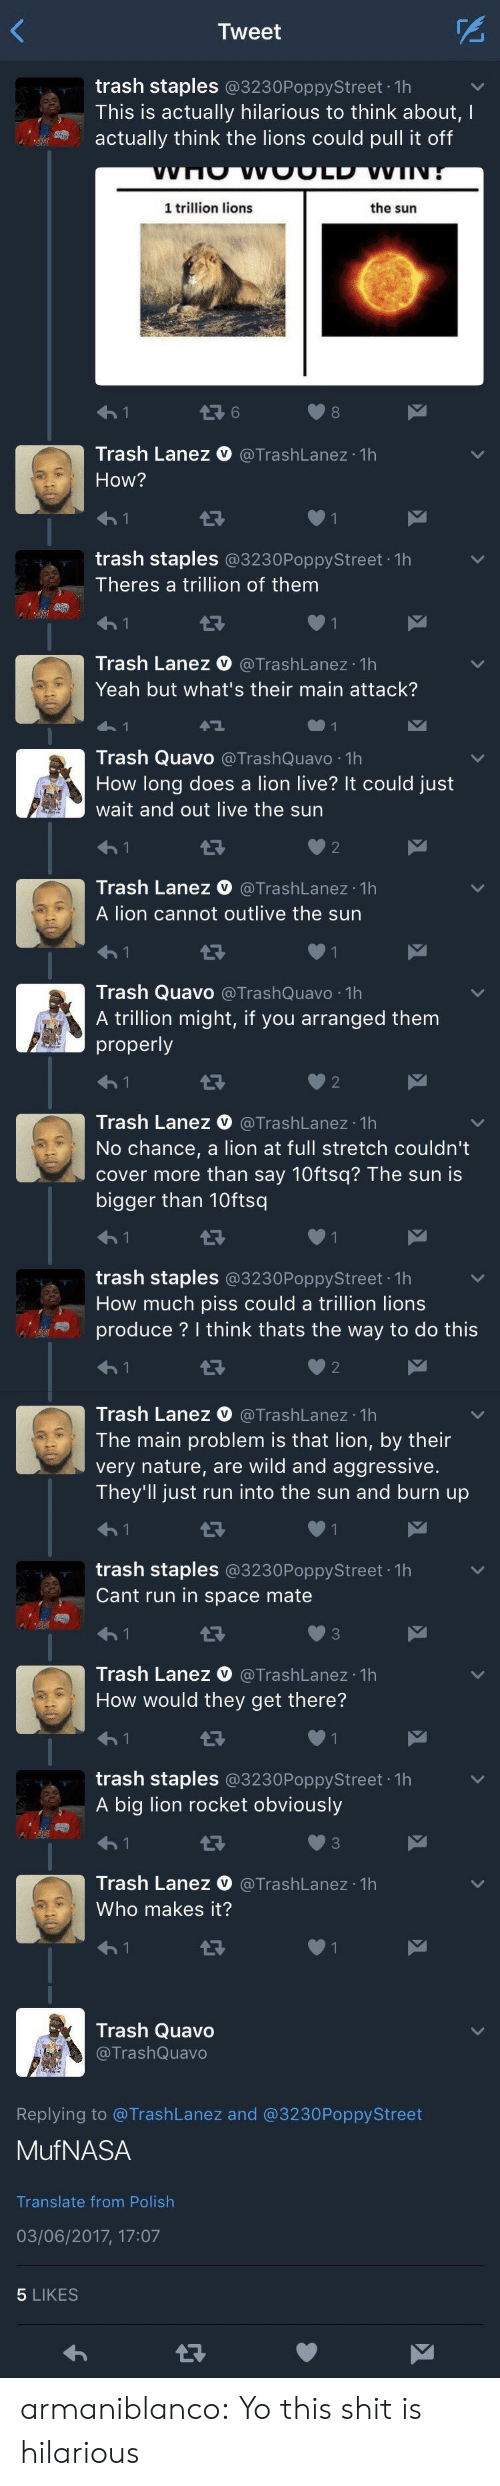 Quavo, Run, and Shit: Tweet  trash staples @3230PoppyStreet 1h  This is actually hilarious to think about, I  actually think the lions could pull it off  1 trillion lions  the sun  6  8  Trash Lanez V @TrashLanez 1h  How?  trash staples @3230PoppyStreet 1h  Theres a trillion of them  Trash Lanez @TrashLanez 1h  Yeah but what's their main attack?   Trash Quavo @TrashQuavo 1h  How long does a lion live? It could just  wait and out live the sun  2  Trash Lanez V @TrashLanez 1h  A lion cannot outlive the sun  Trash Quavo @TrashQuavo 1h  A trillion might, if you arranged them  properly  2  Trash Lanez V @TrashLanez 1h  No chance, a lion at full stretch couldn't  cover more than say 10ftsq? The sun is  bigger than 10ftsq  trash staples @3230PoppyStreet 1h  How much piss could a trillion lion:s  produce ? I think thats the way to do this  007 ,  2   Trash Lanez O @TrashLanez 1h  The main problem is that lion, by their  very nature, are wild and aggressive.  They'll just run into the sun and burn up  trash staples @3230PoppyStreet. 1h  Cant run in space mate  わ!  Trash Lanez @TrashLanez 1h  How would they get there?  ﹀  13  trash staples @3230PoppyStreet 1h  A big lion rocket obviously  Trash Lanez O@TrashLanez 1h  Who makes it?   Trash Quavo  @TrashQuavo  Replying to @TrashLanez and @3230PoppyStreet  MufNASA  Translate from Polish  03/06/2017, 17:07  5 LIKES armaniblanco: Yo this shit is hilarious